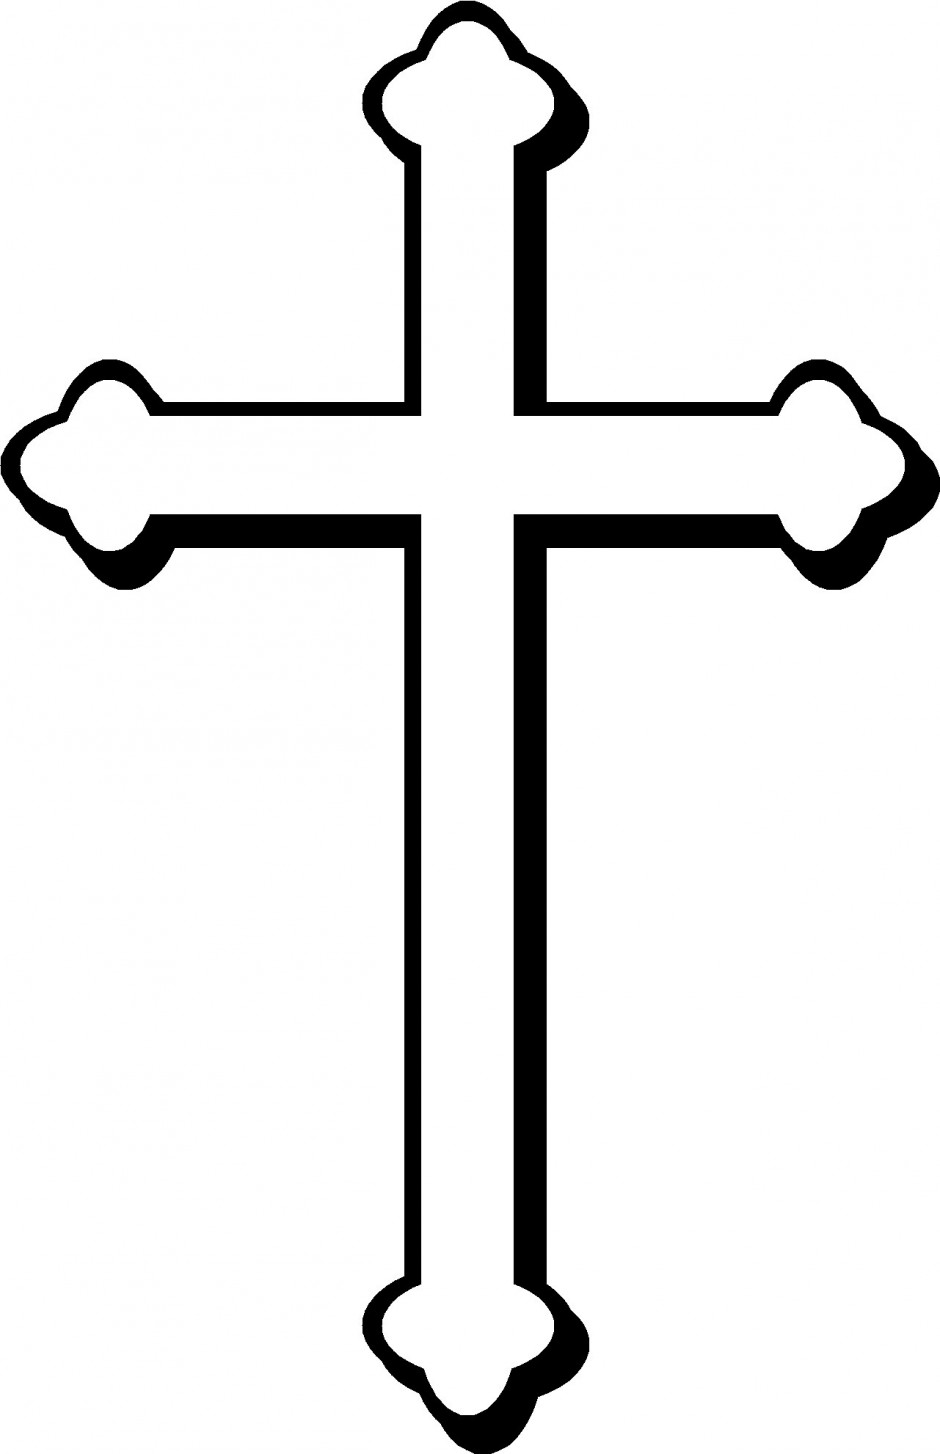 sign of the cross Colouring Pages.